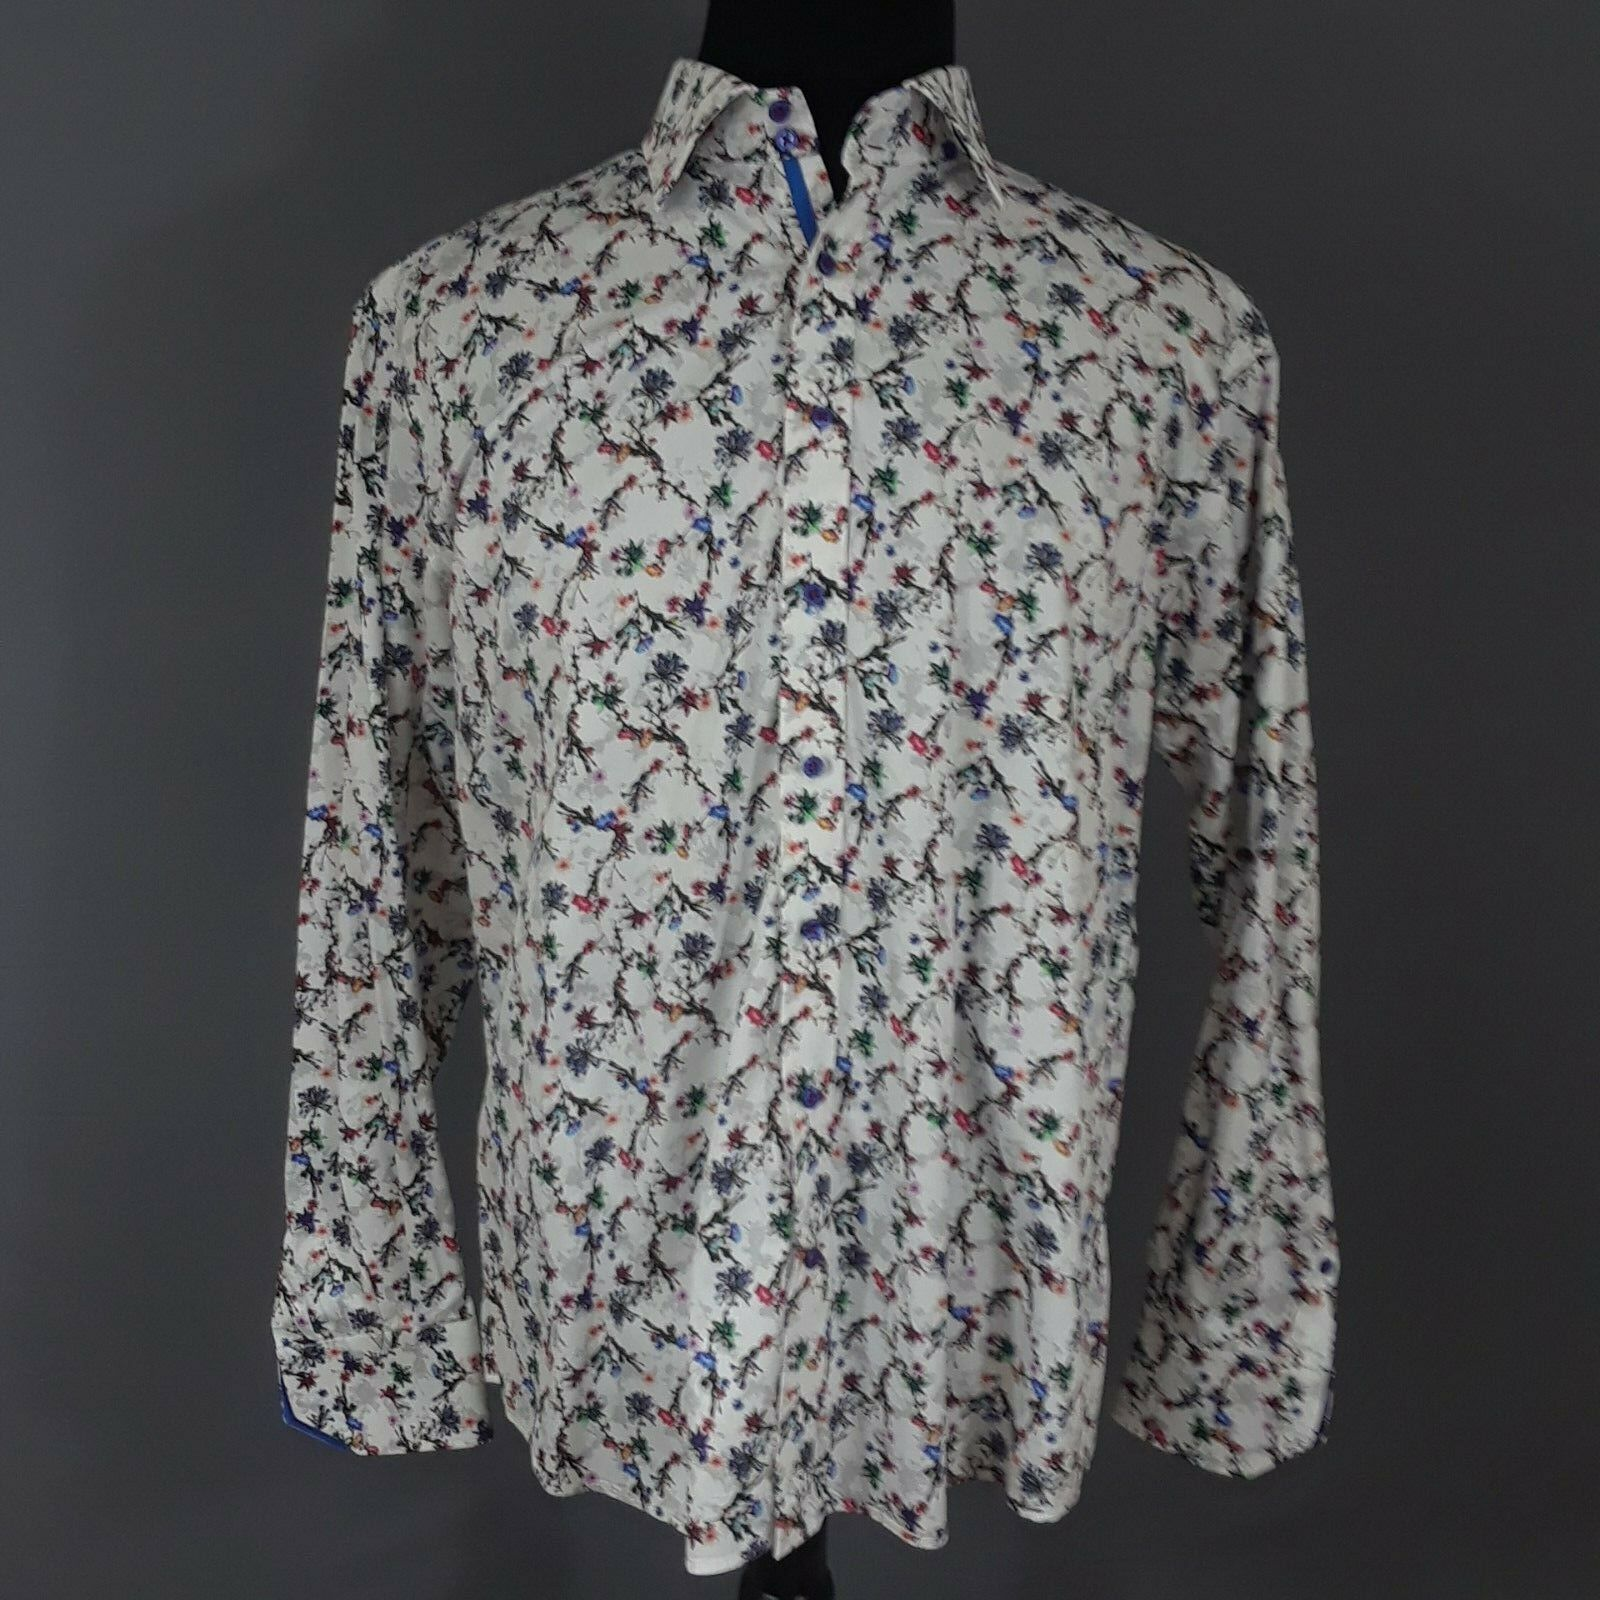 CLAUDIO LUGLI Men's Pure Cotton Floral Long Sleeve Button Down Shirt XXL 45-46